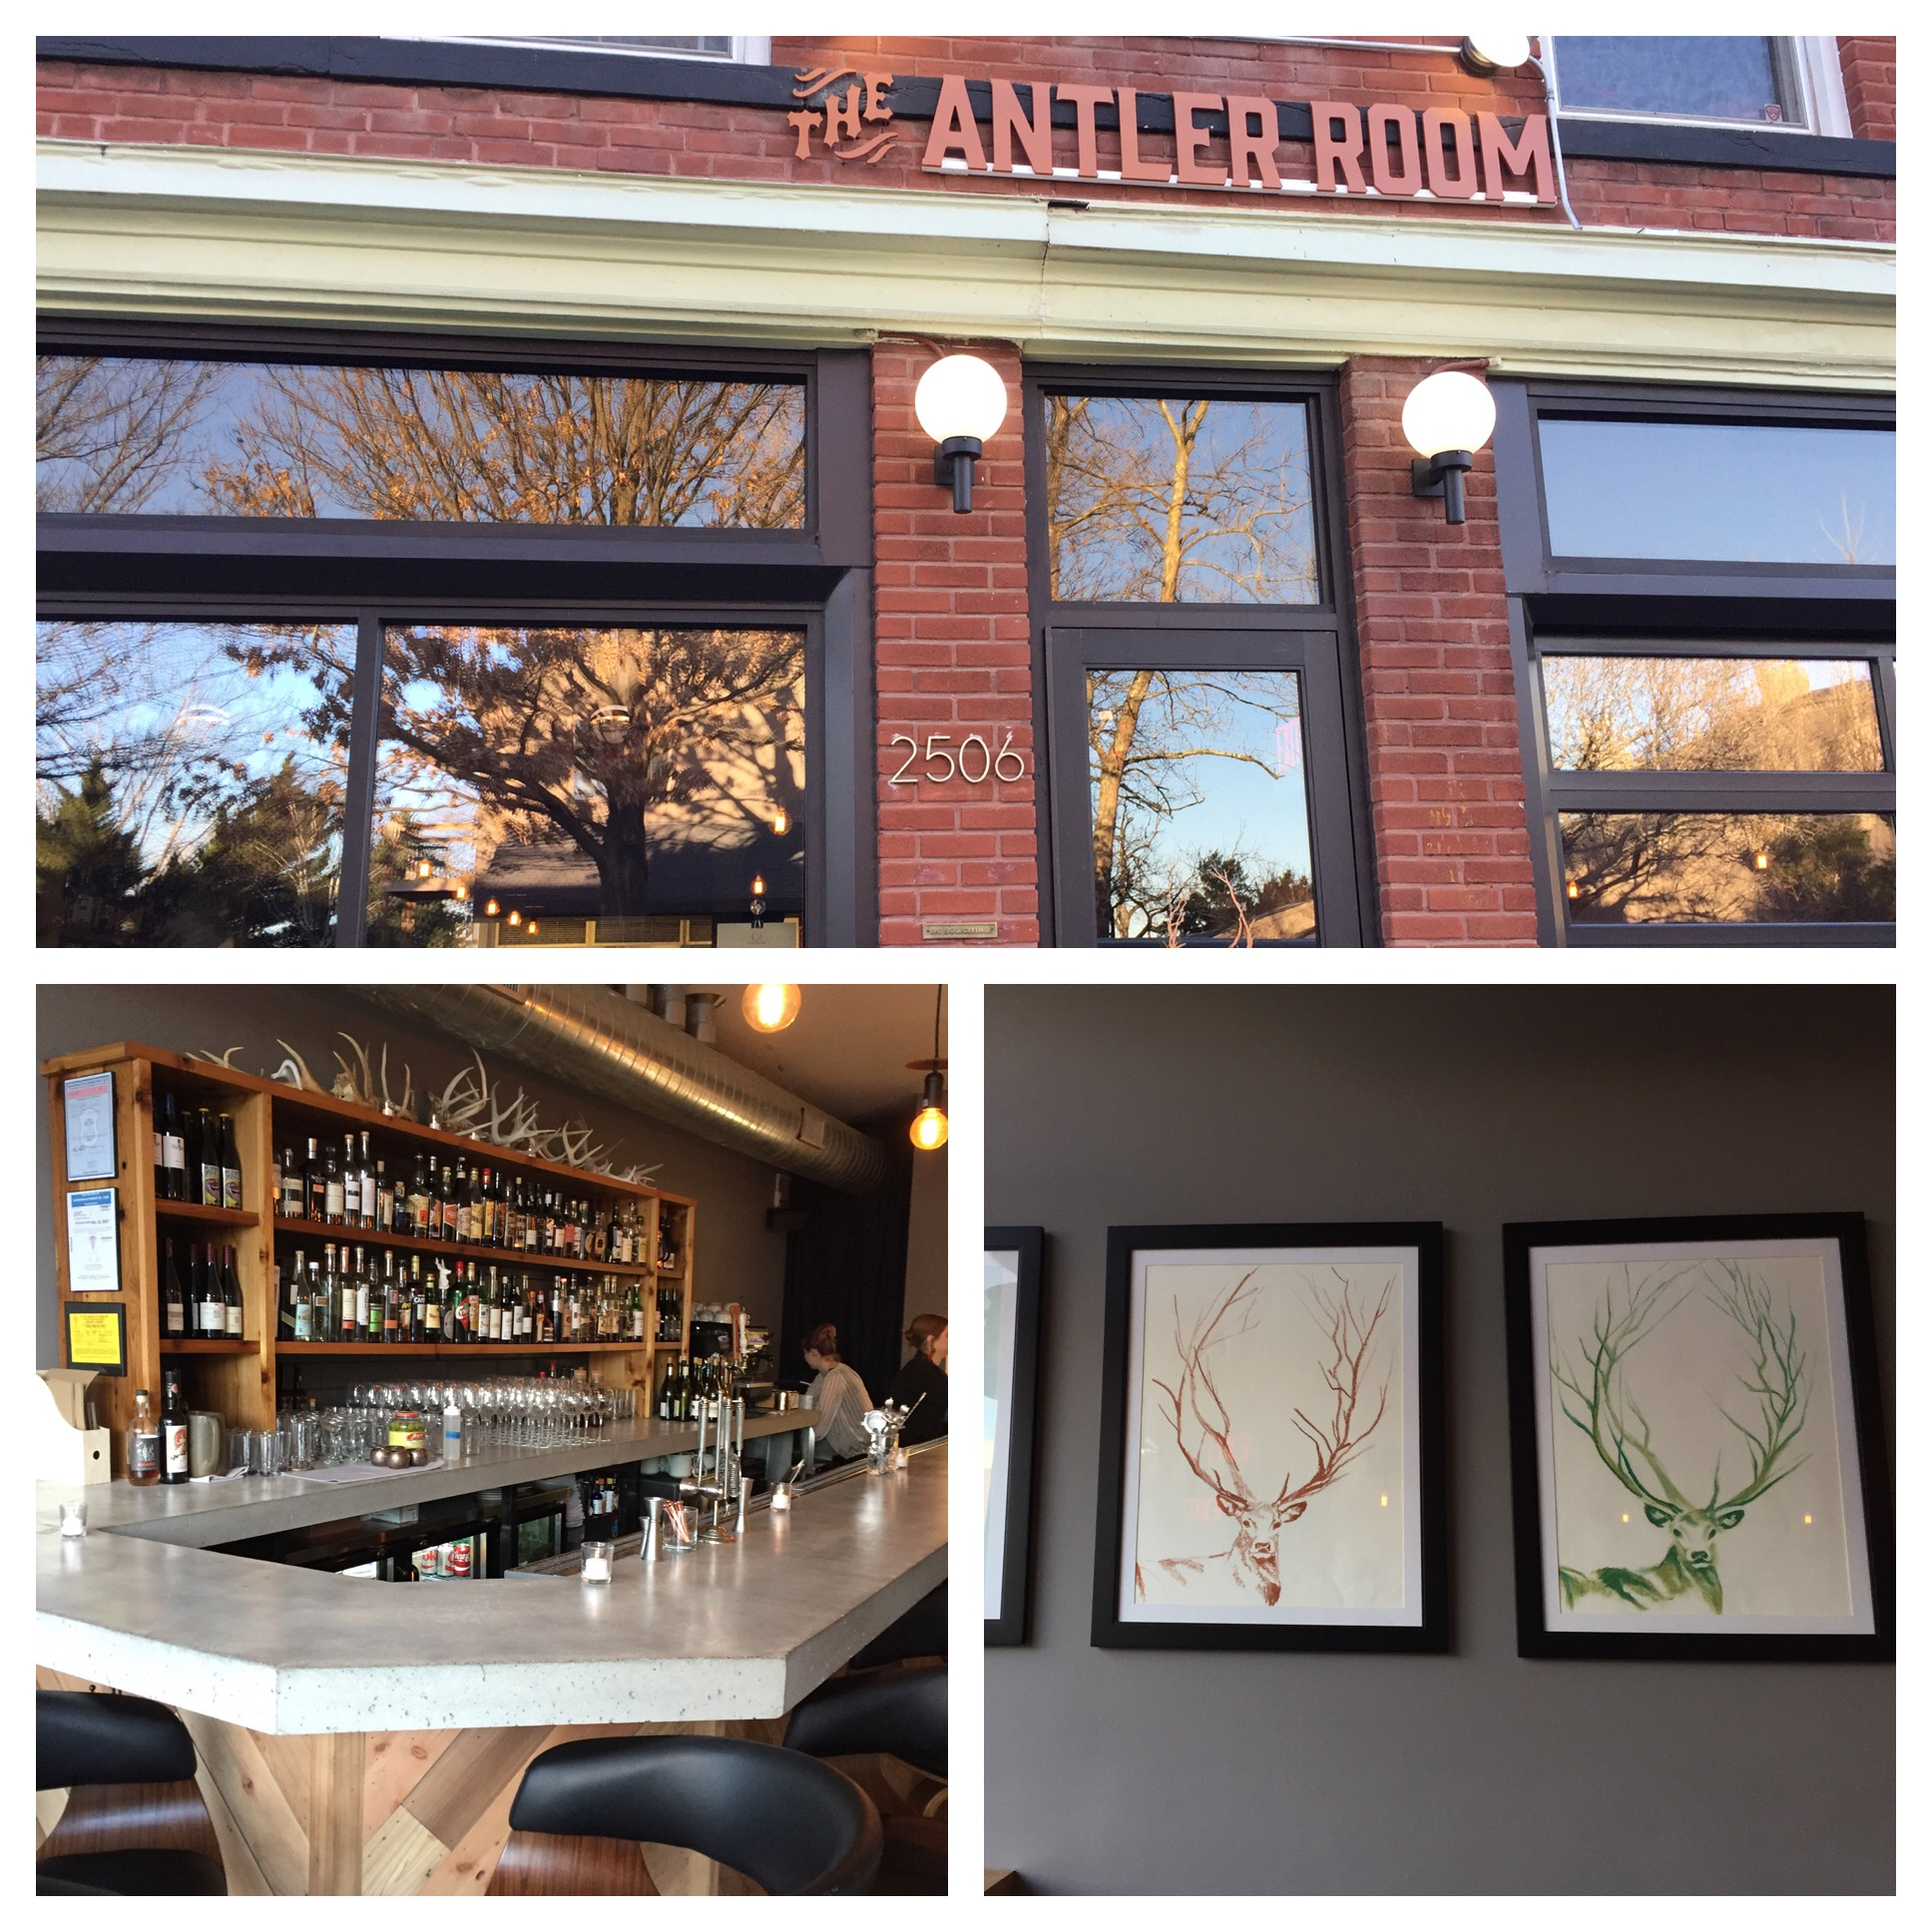 Very cool space with lots of antler details. Not large so best to make a reservation to insure you get in.